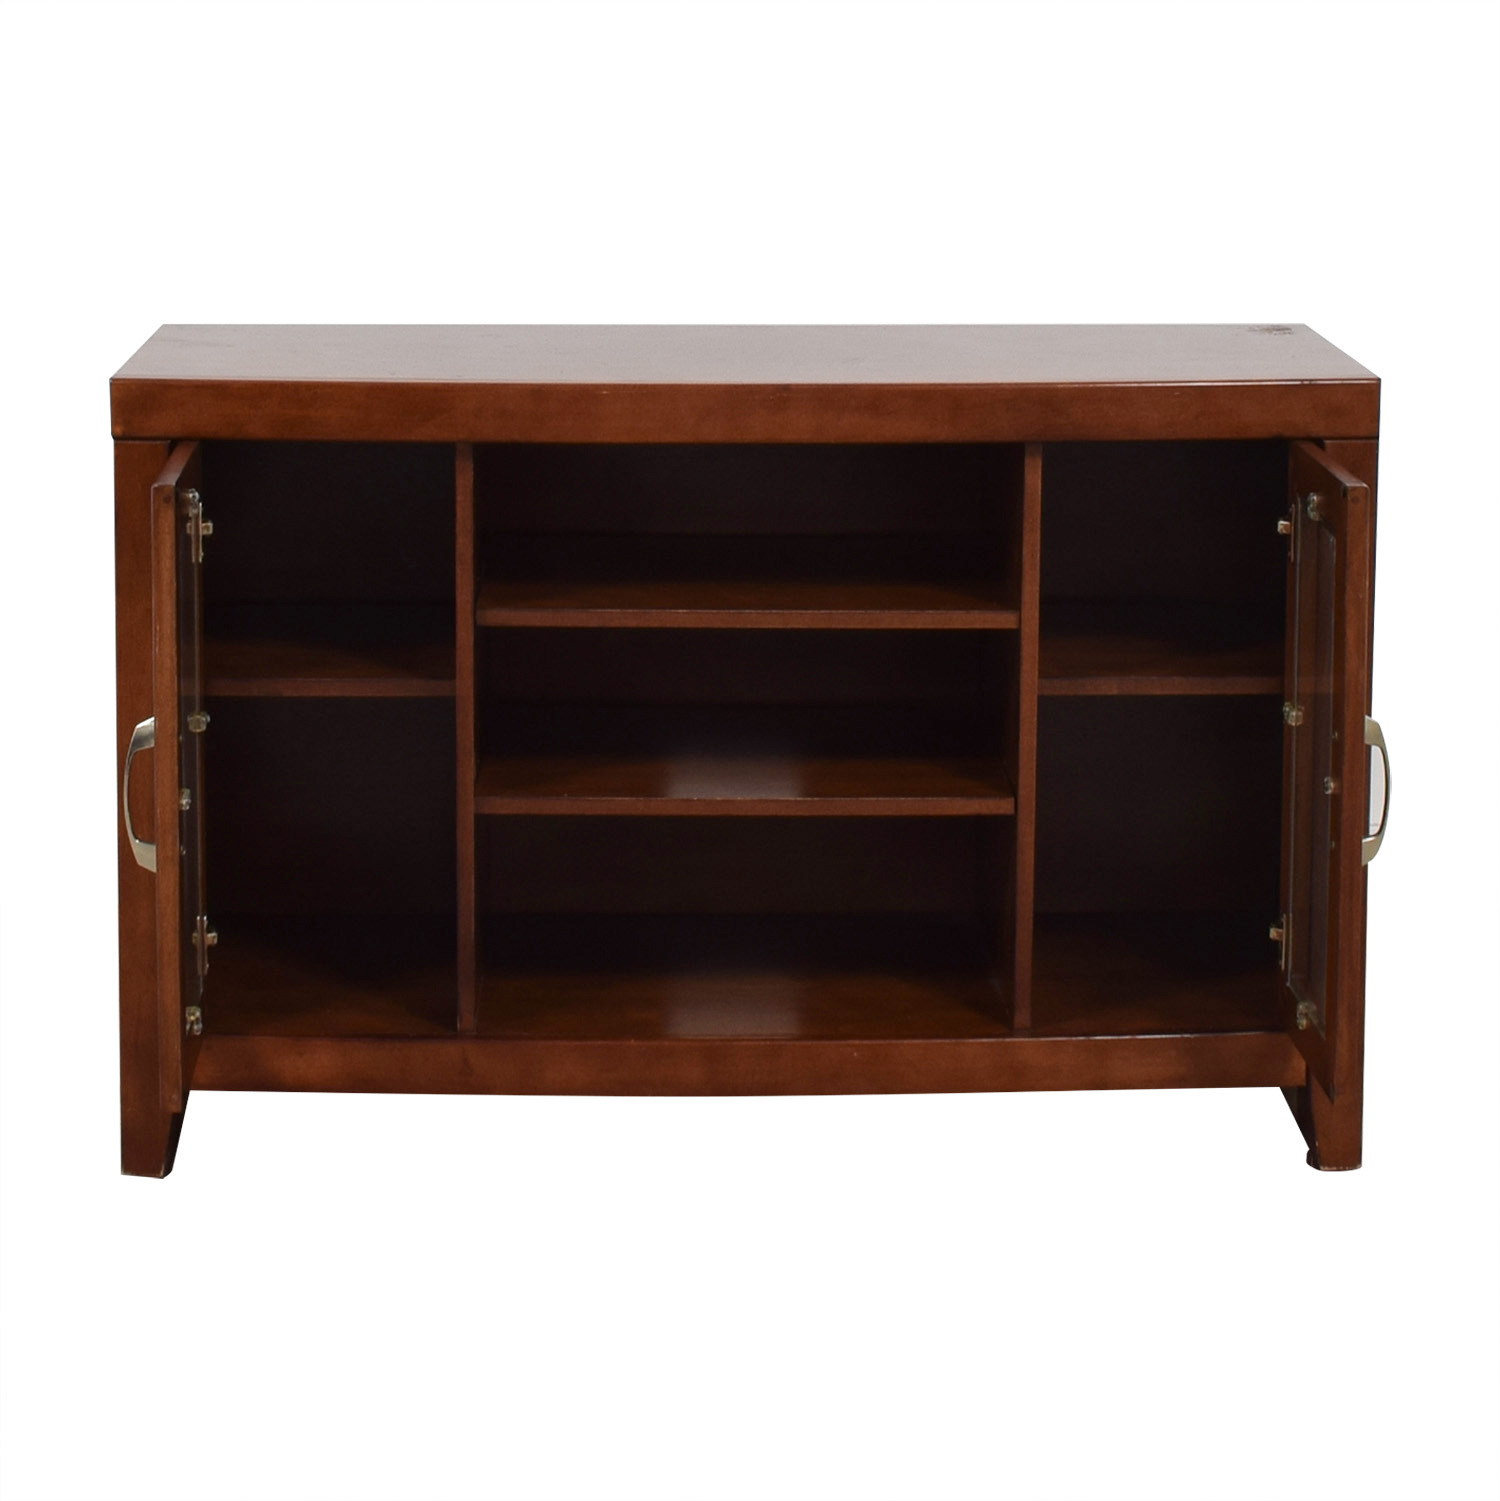 shop Raymour & Flanigan Del Mar Cherry TV Stand Raymour & Flanigan